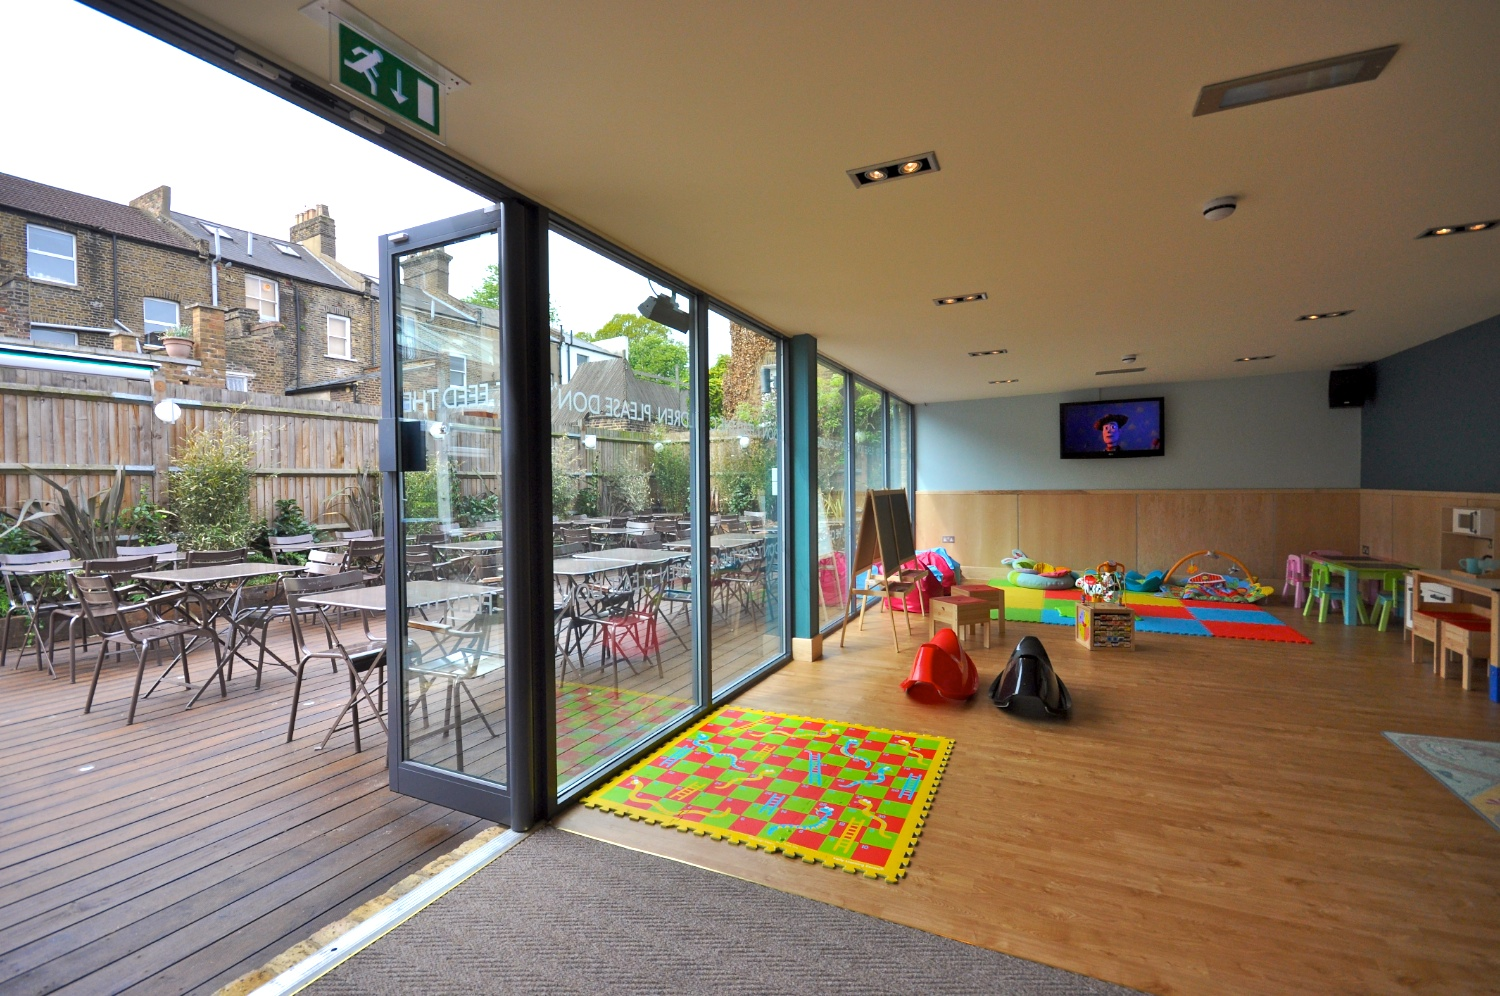 The Florence In Herne Hill A Pub With Kids Playroom